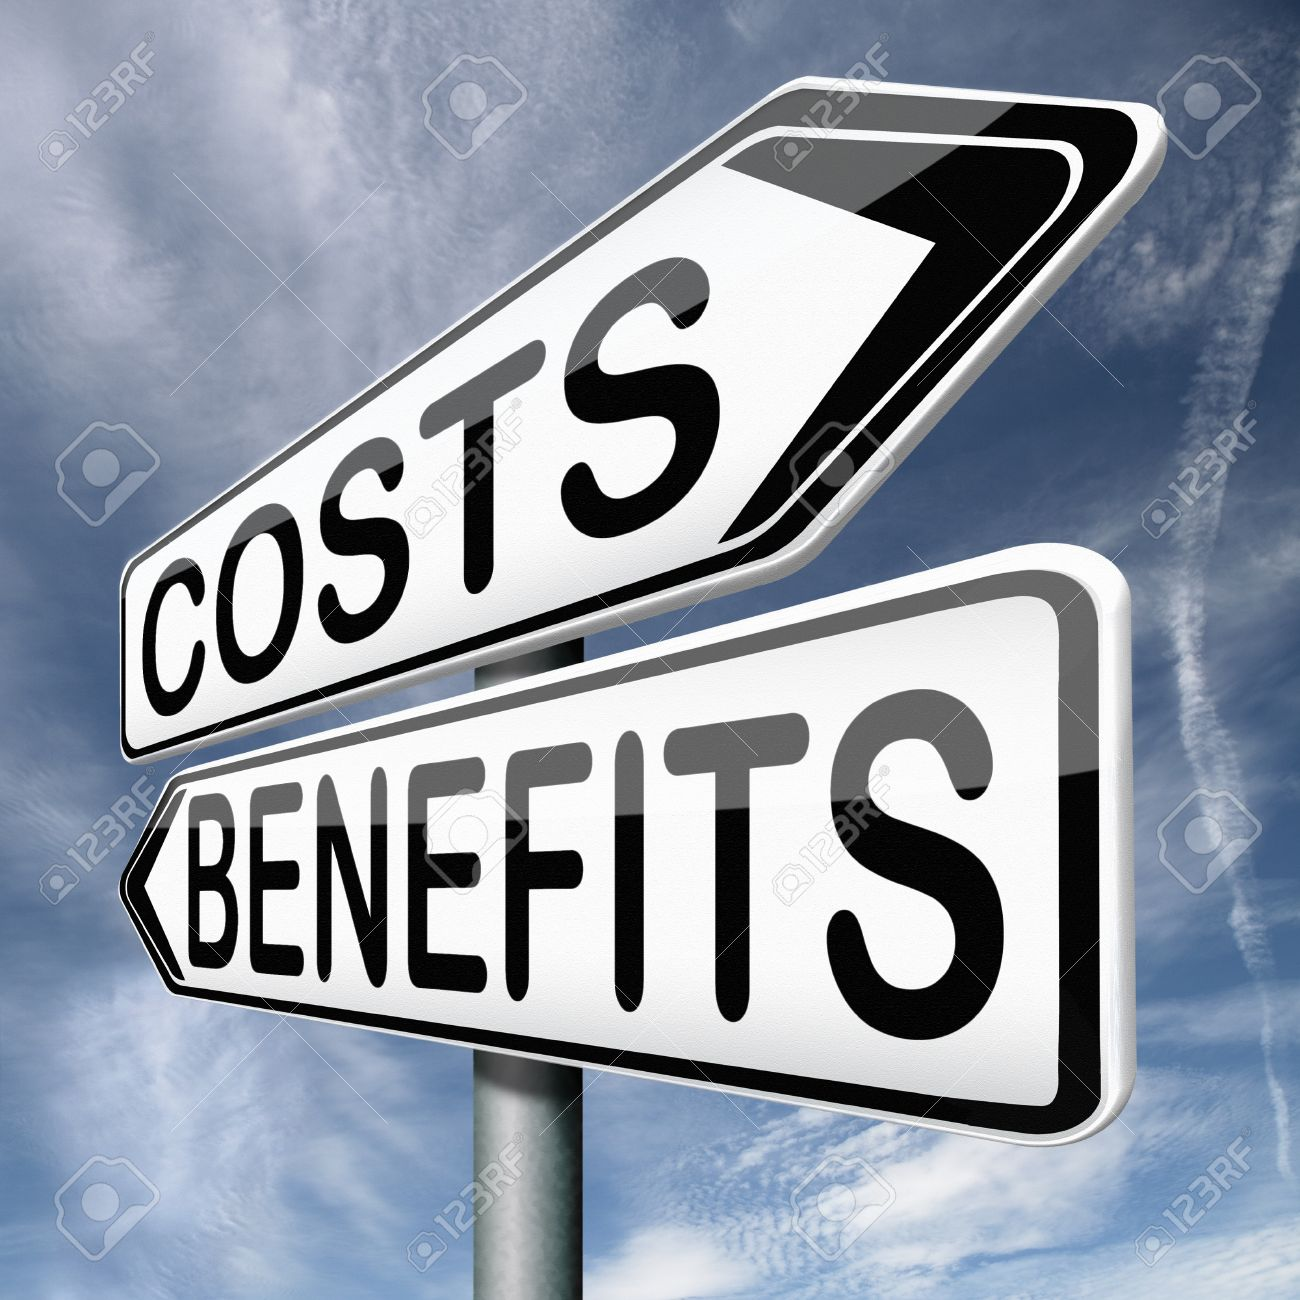 Costs And Benefits Analysis Business Management Investment Value Stock Photo Picture And Royalty Free Image Image 17411676